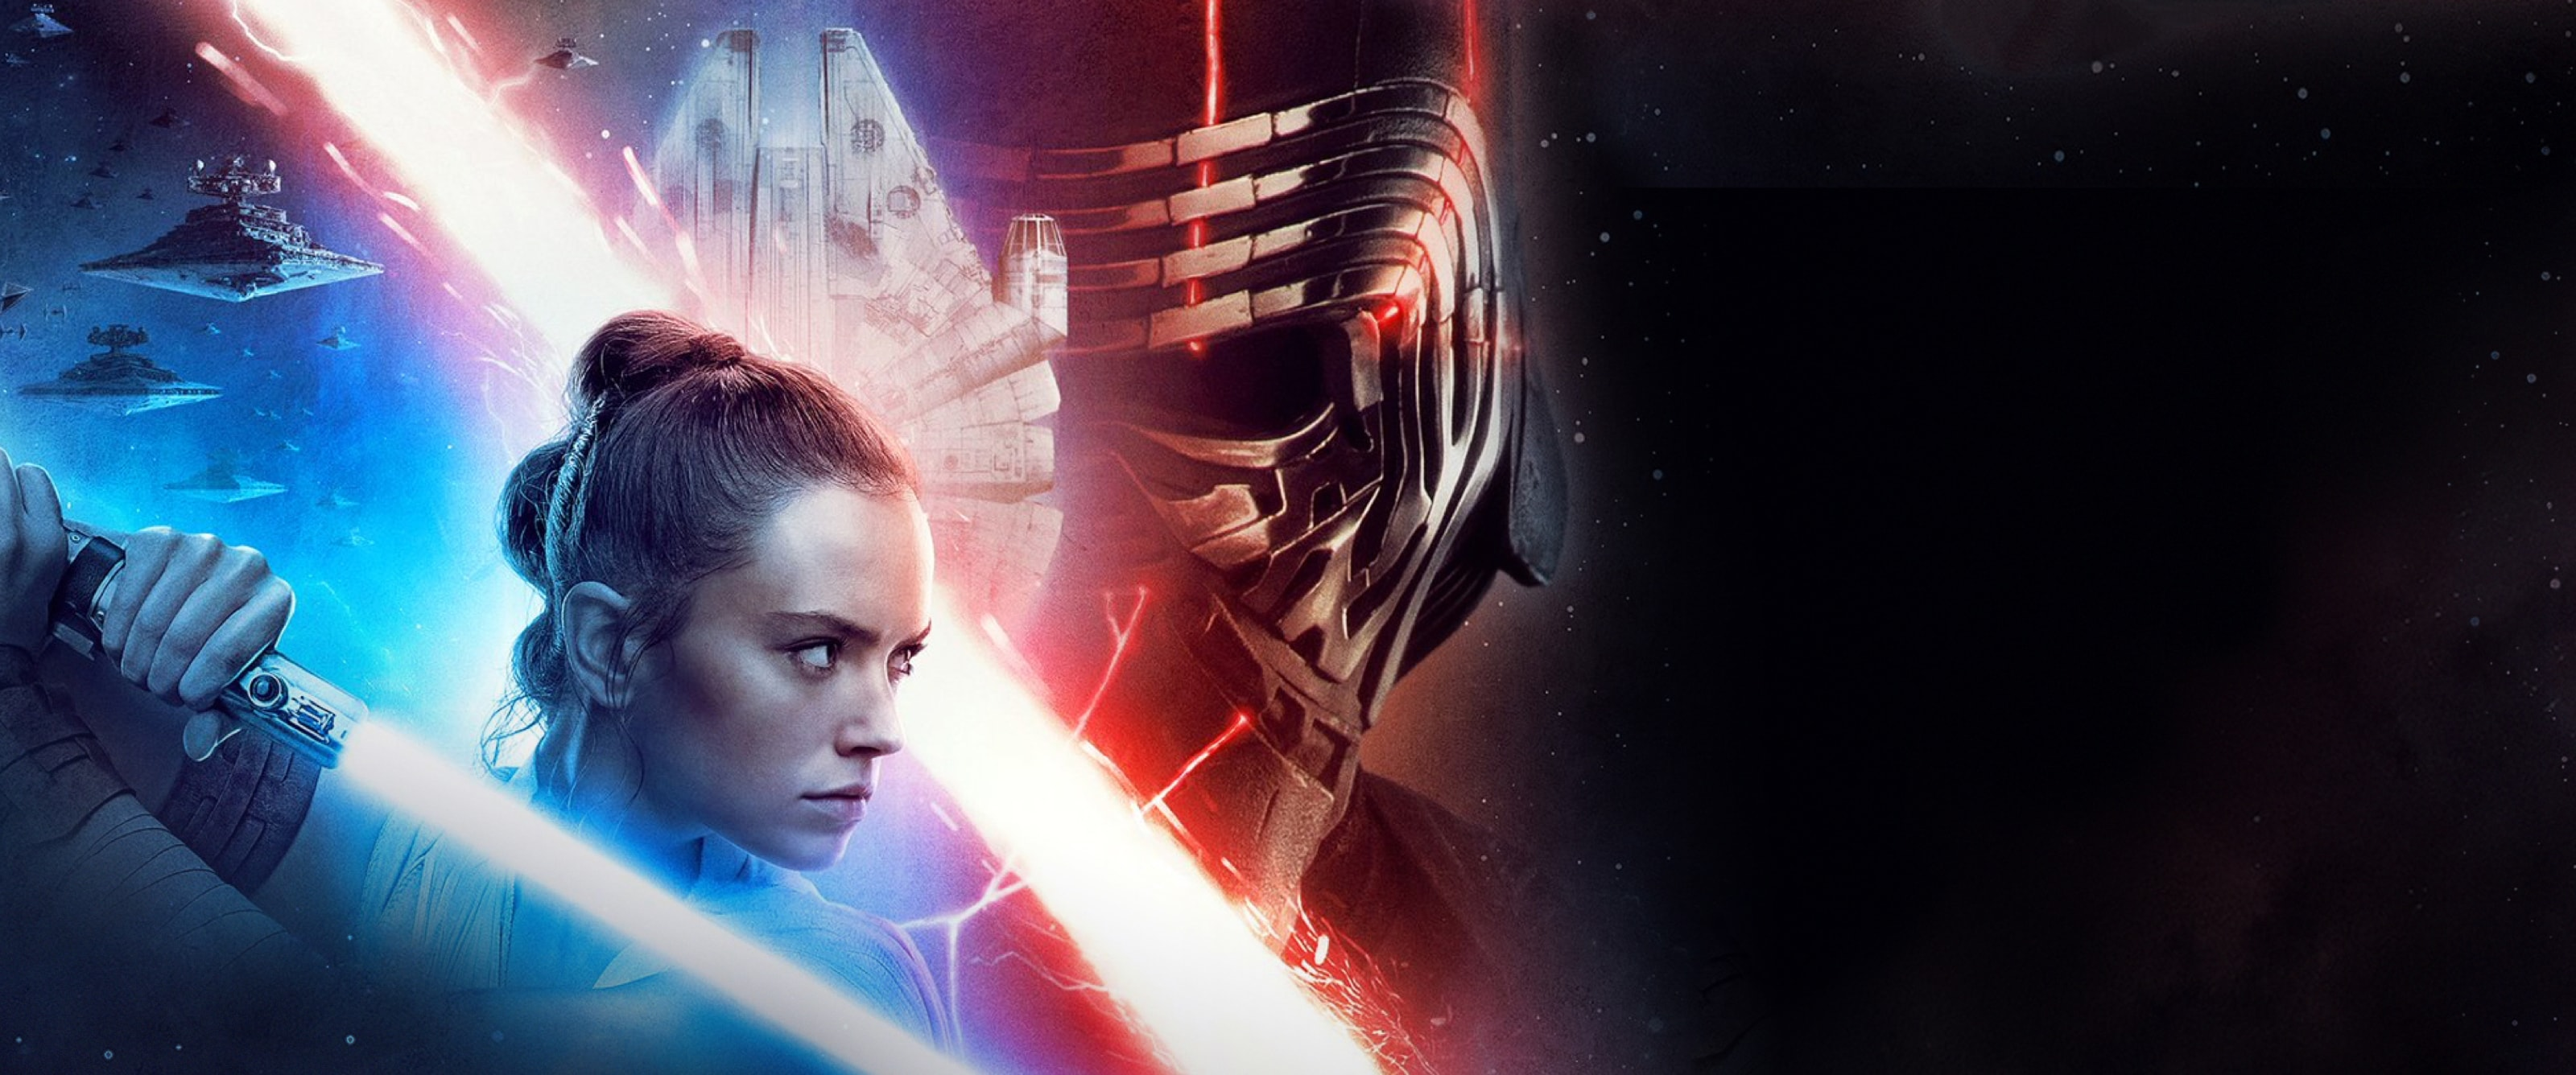 En savoir plus sur Star Wars : L'ascension de Skywalker